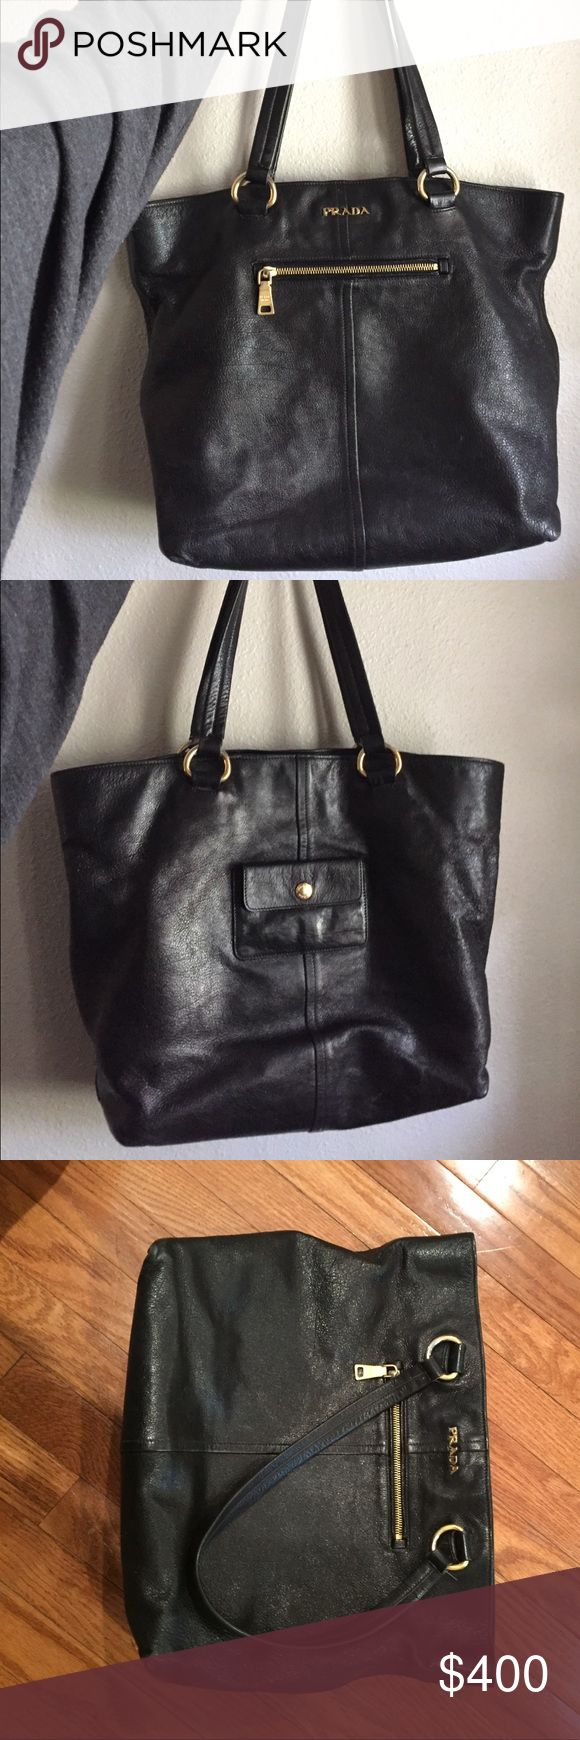 PRADA tote!!  Perfect for your catch all purse! Bought this tote in Las Vegas at the Prada store and have given it a lot of love! It is perfect for a laptop case, purse, travel bag, etc.  Black leather with gold accents! Prada Bags Totes